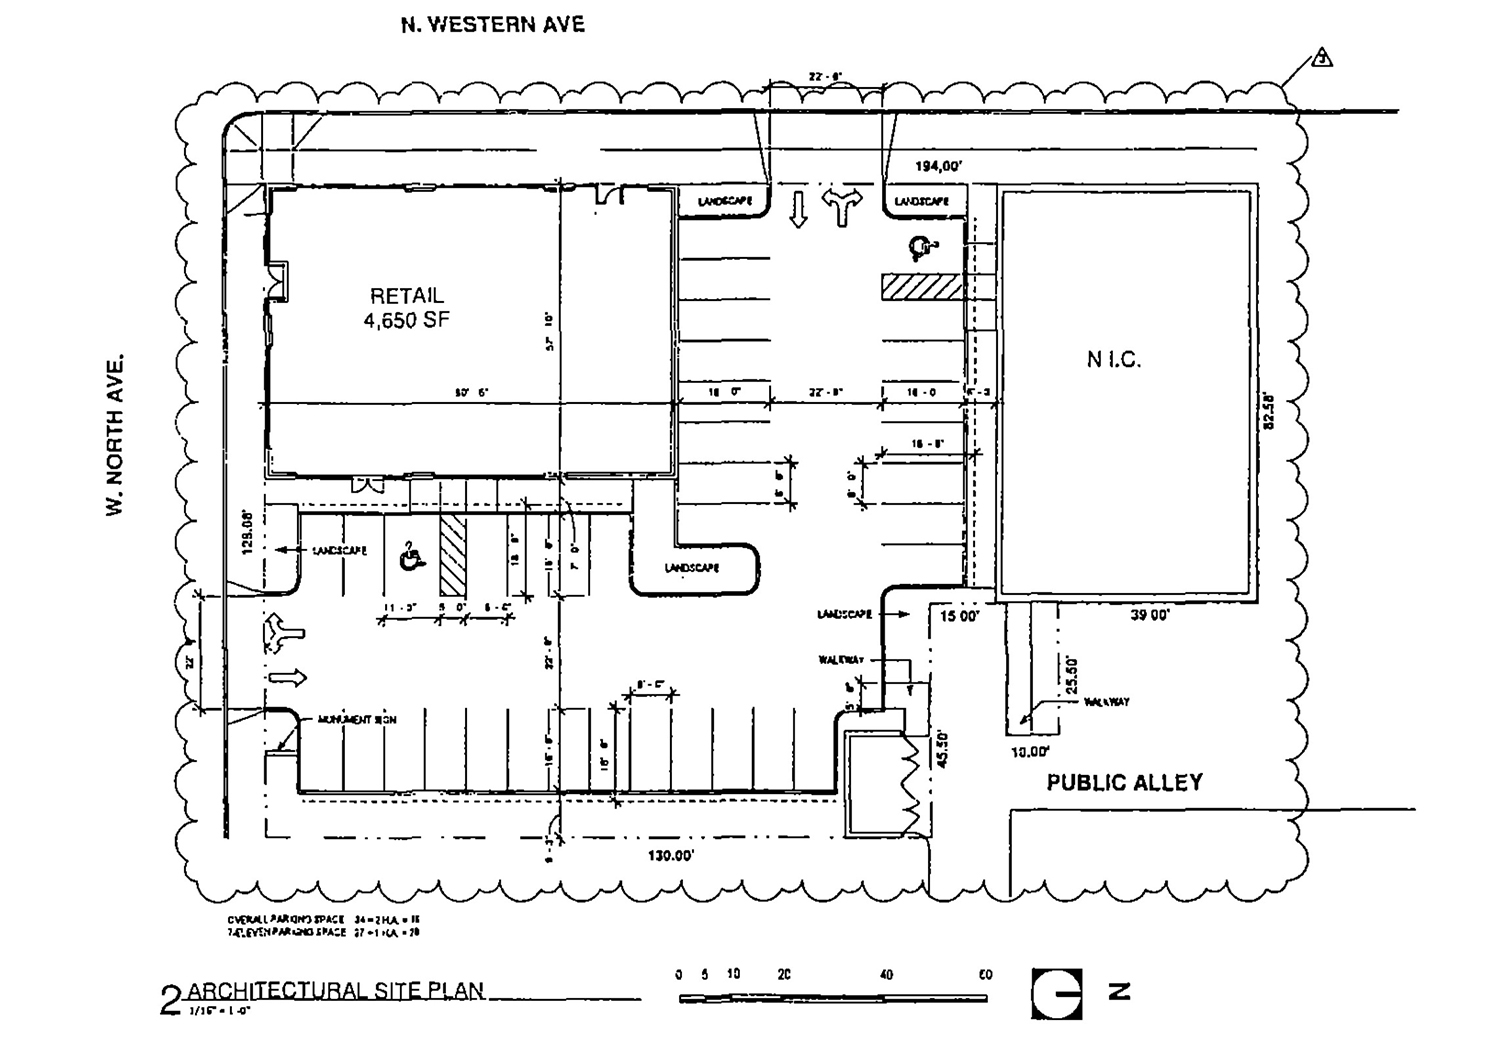 Site Plan for 1601 N Western Avenue. Drawing by Design Studio 24